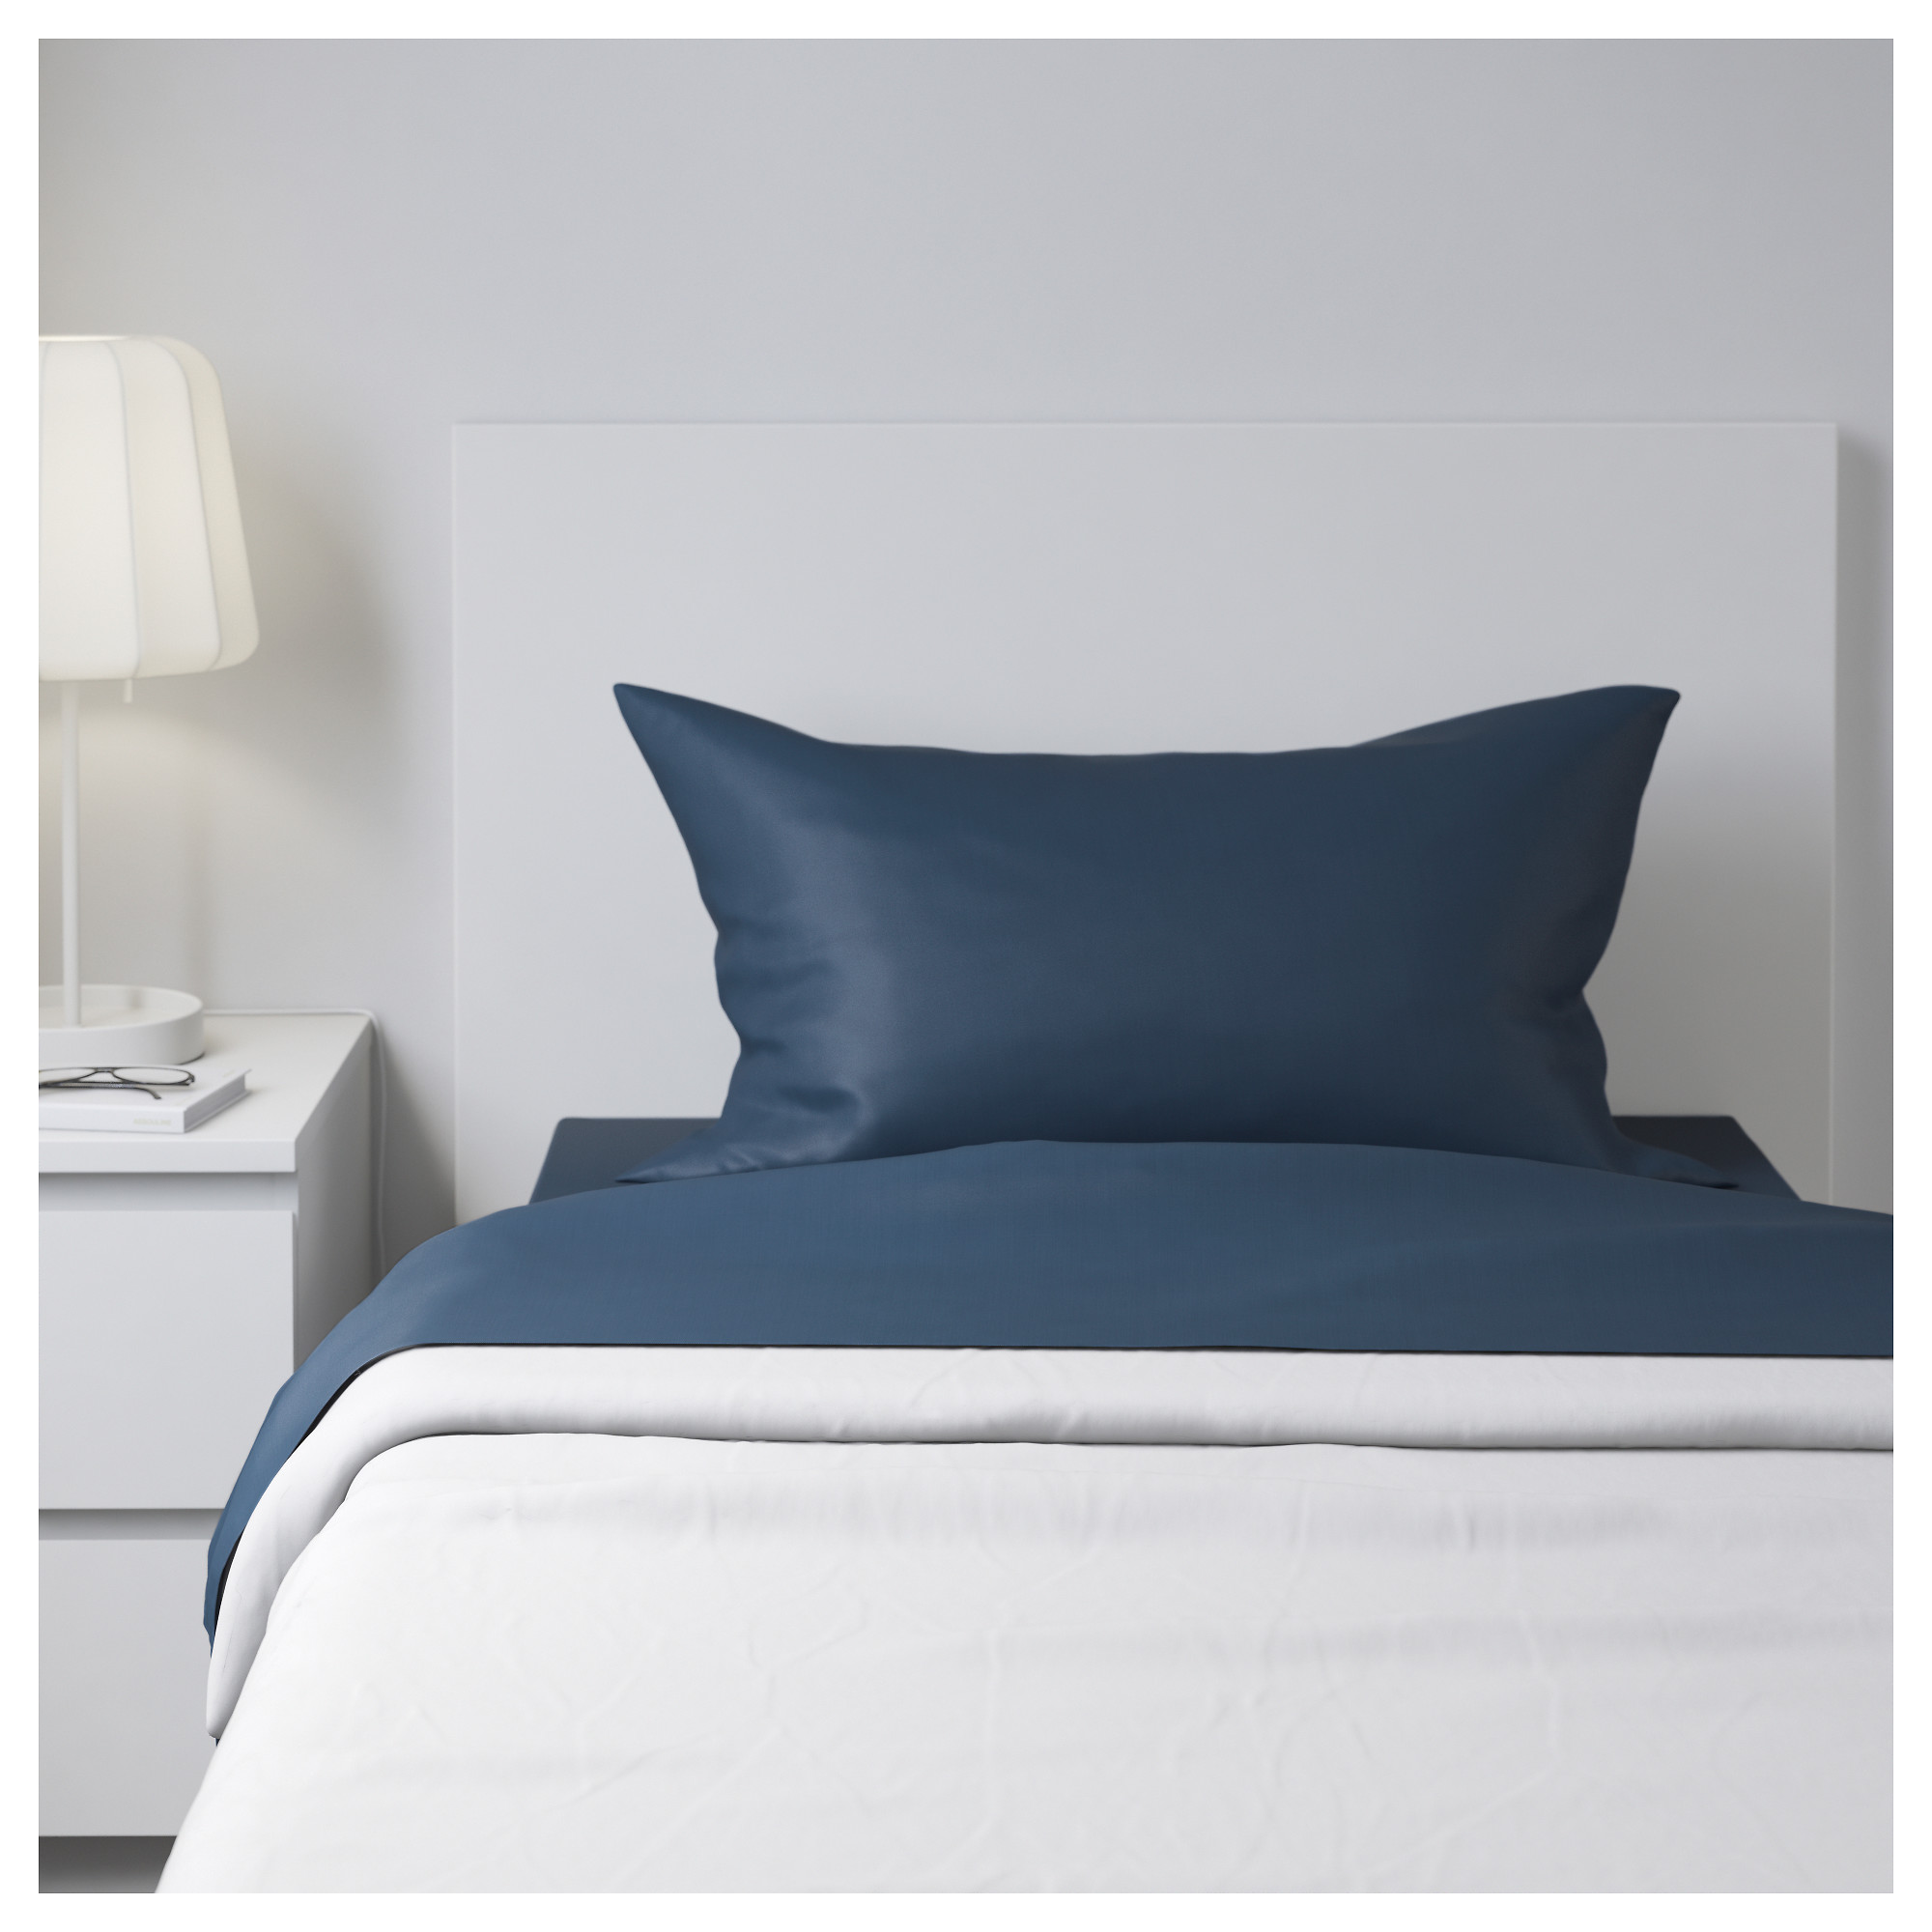 Design Ikea Bedding bedding bed linen ikea ullvide sheet set dark blue thread count 200 200